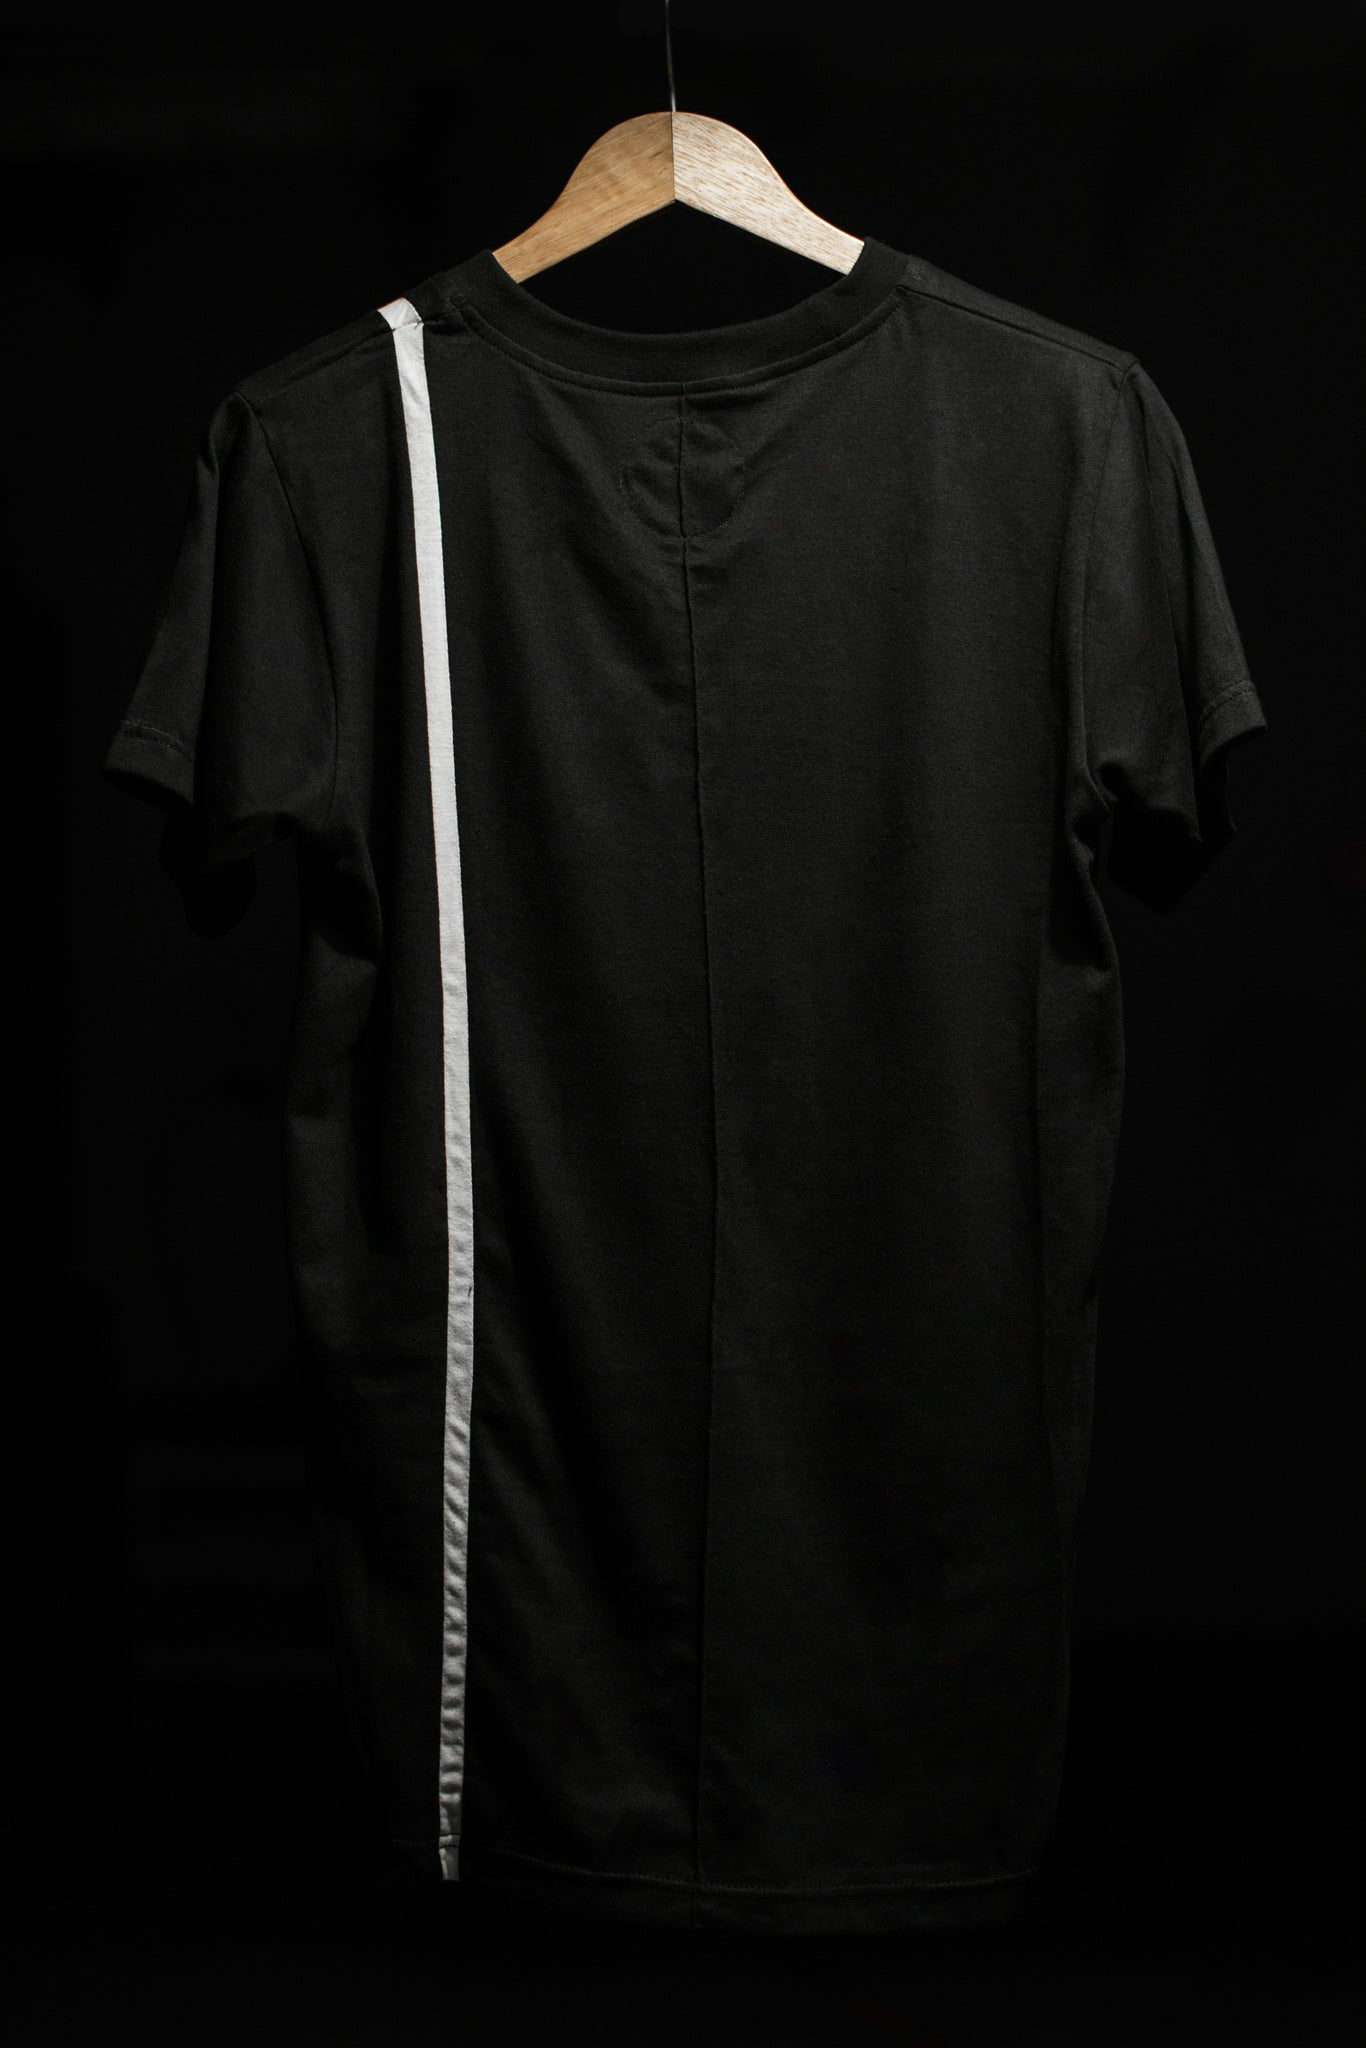 Slim One Stripe Basic Tee